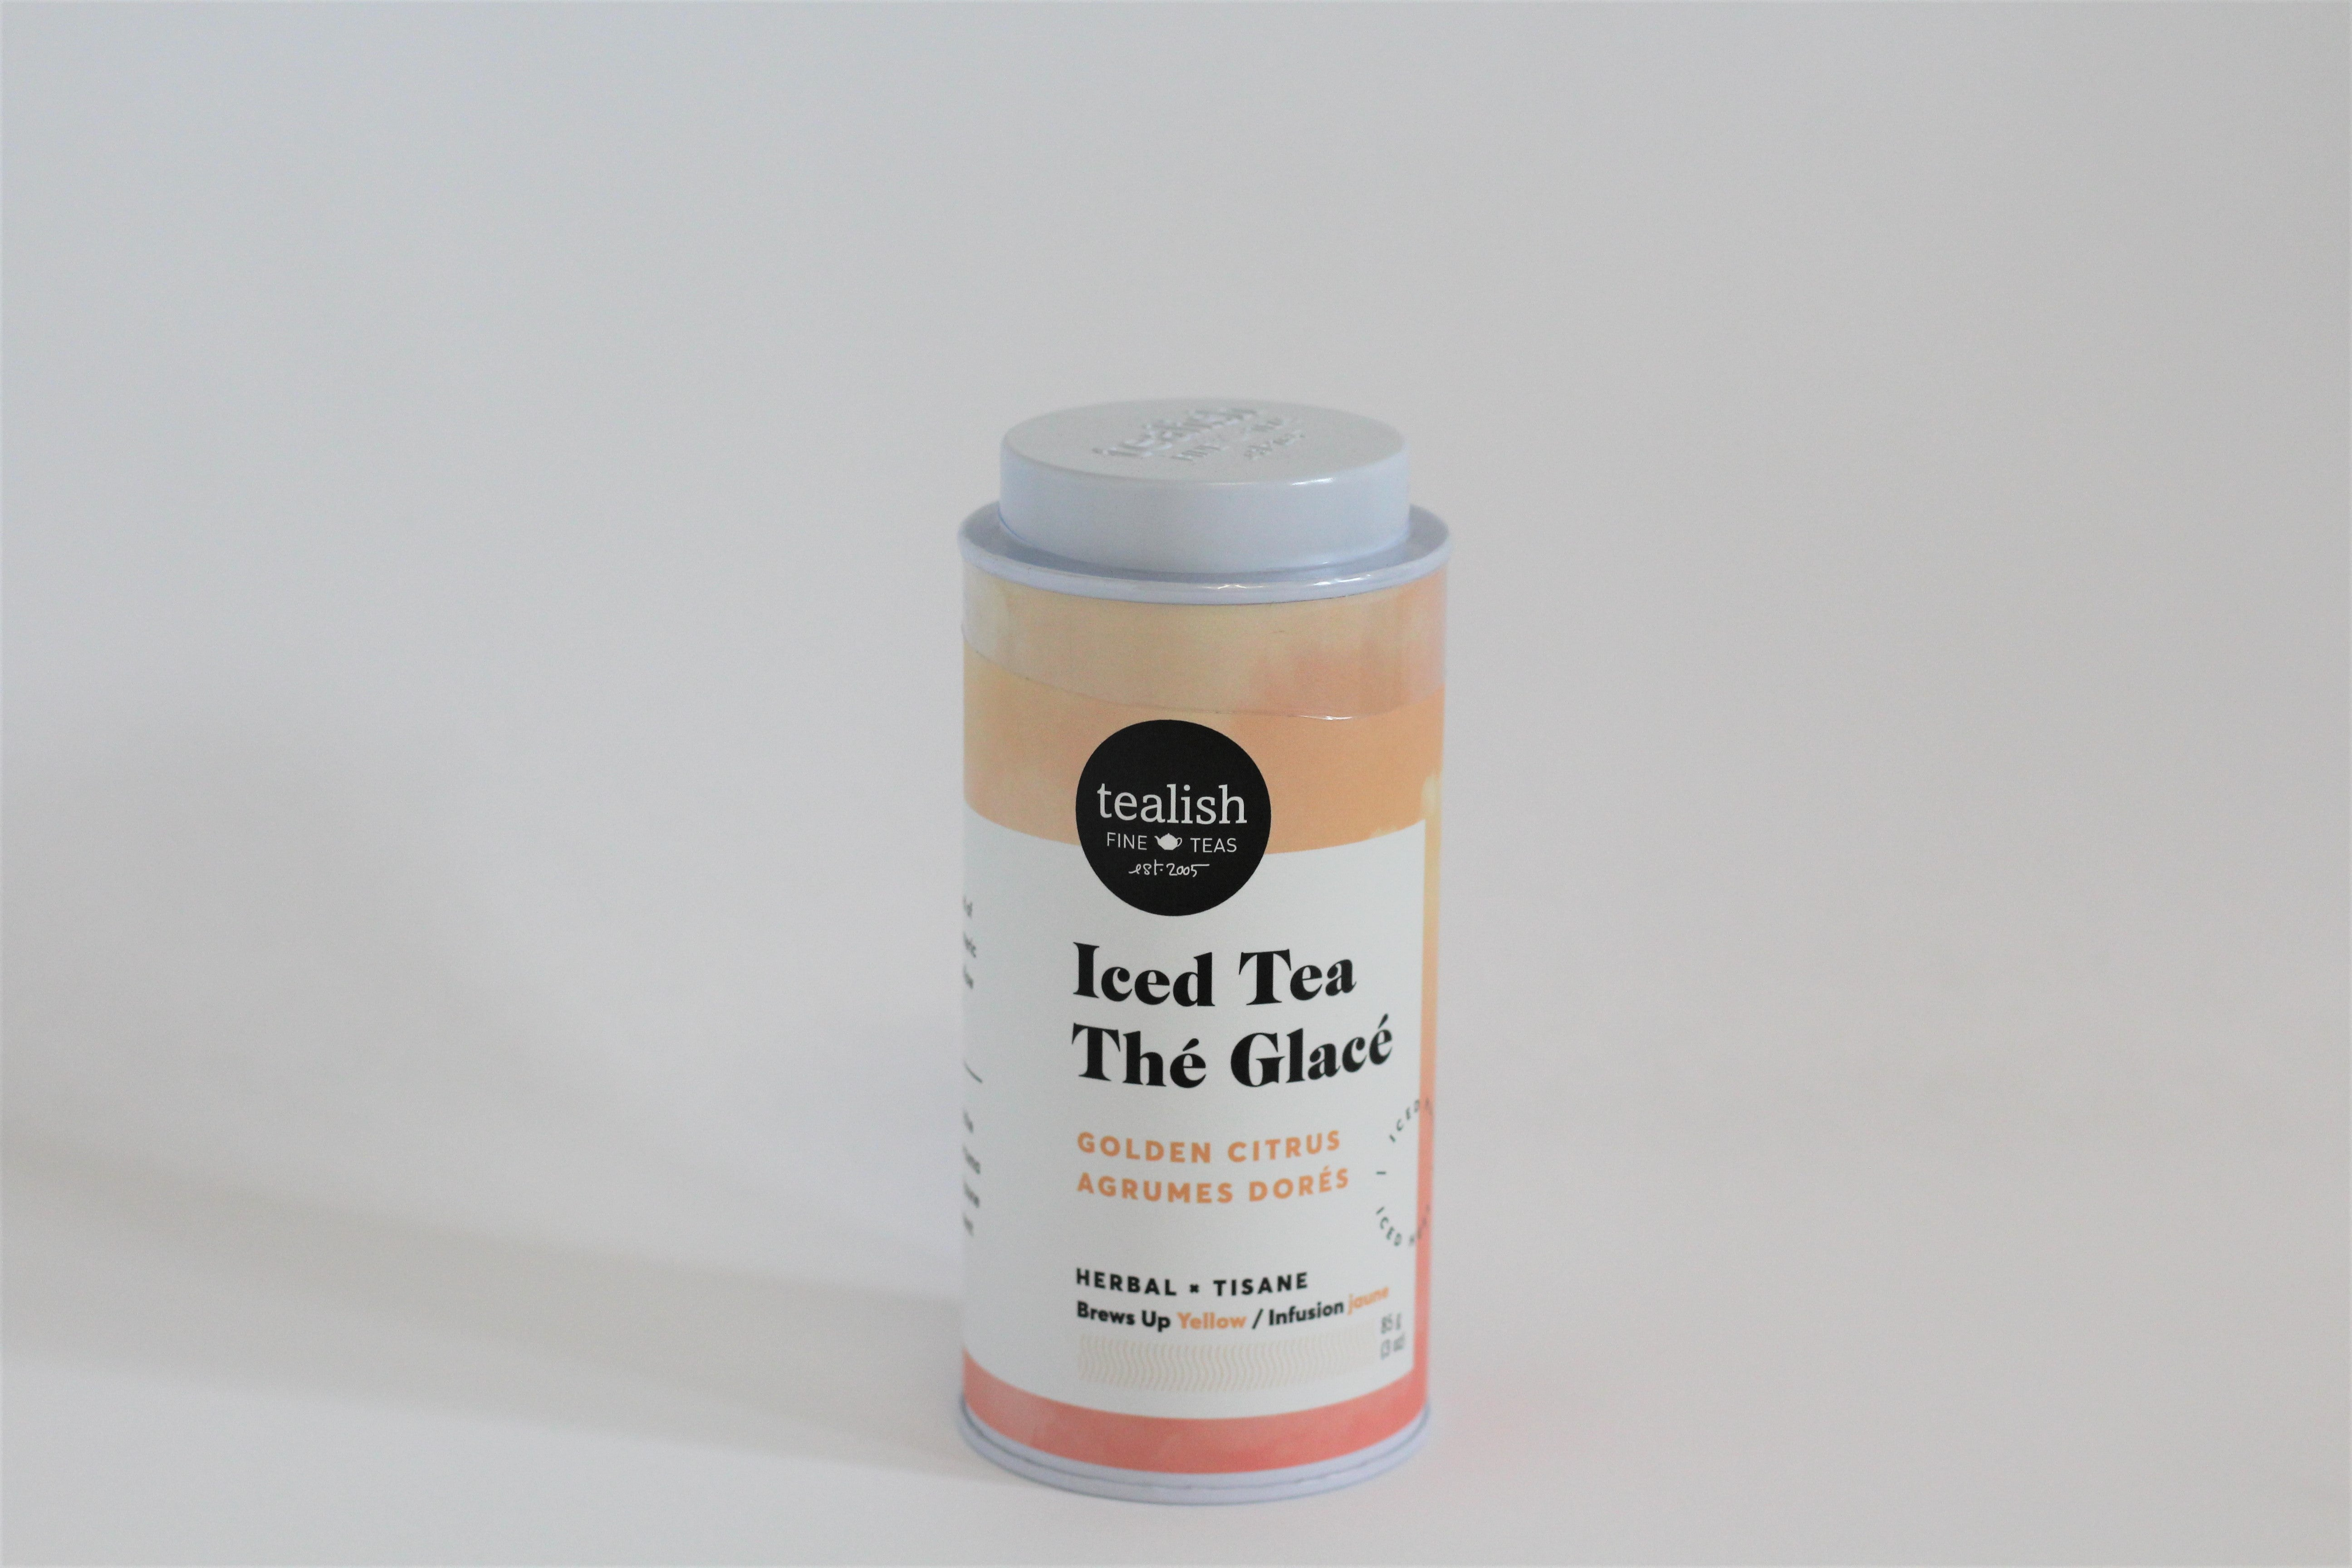 tealish golden citrus iced tea periwinkle flowers florist toronto